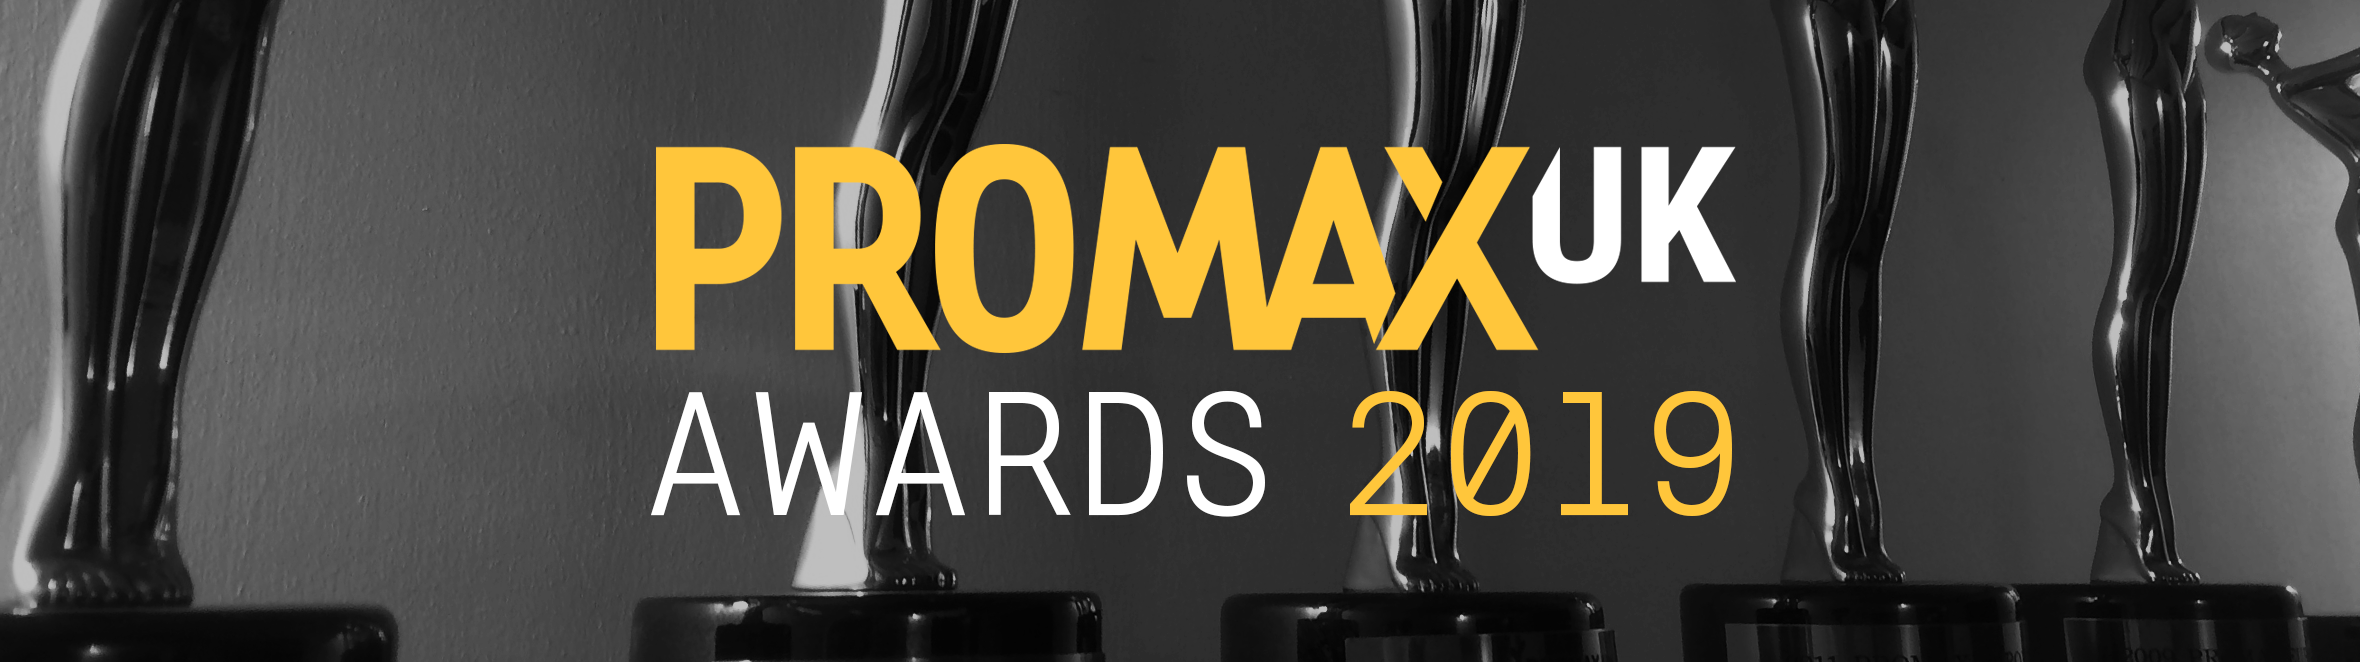 Promax Awards 2019 winners announced